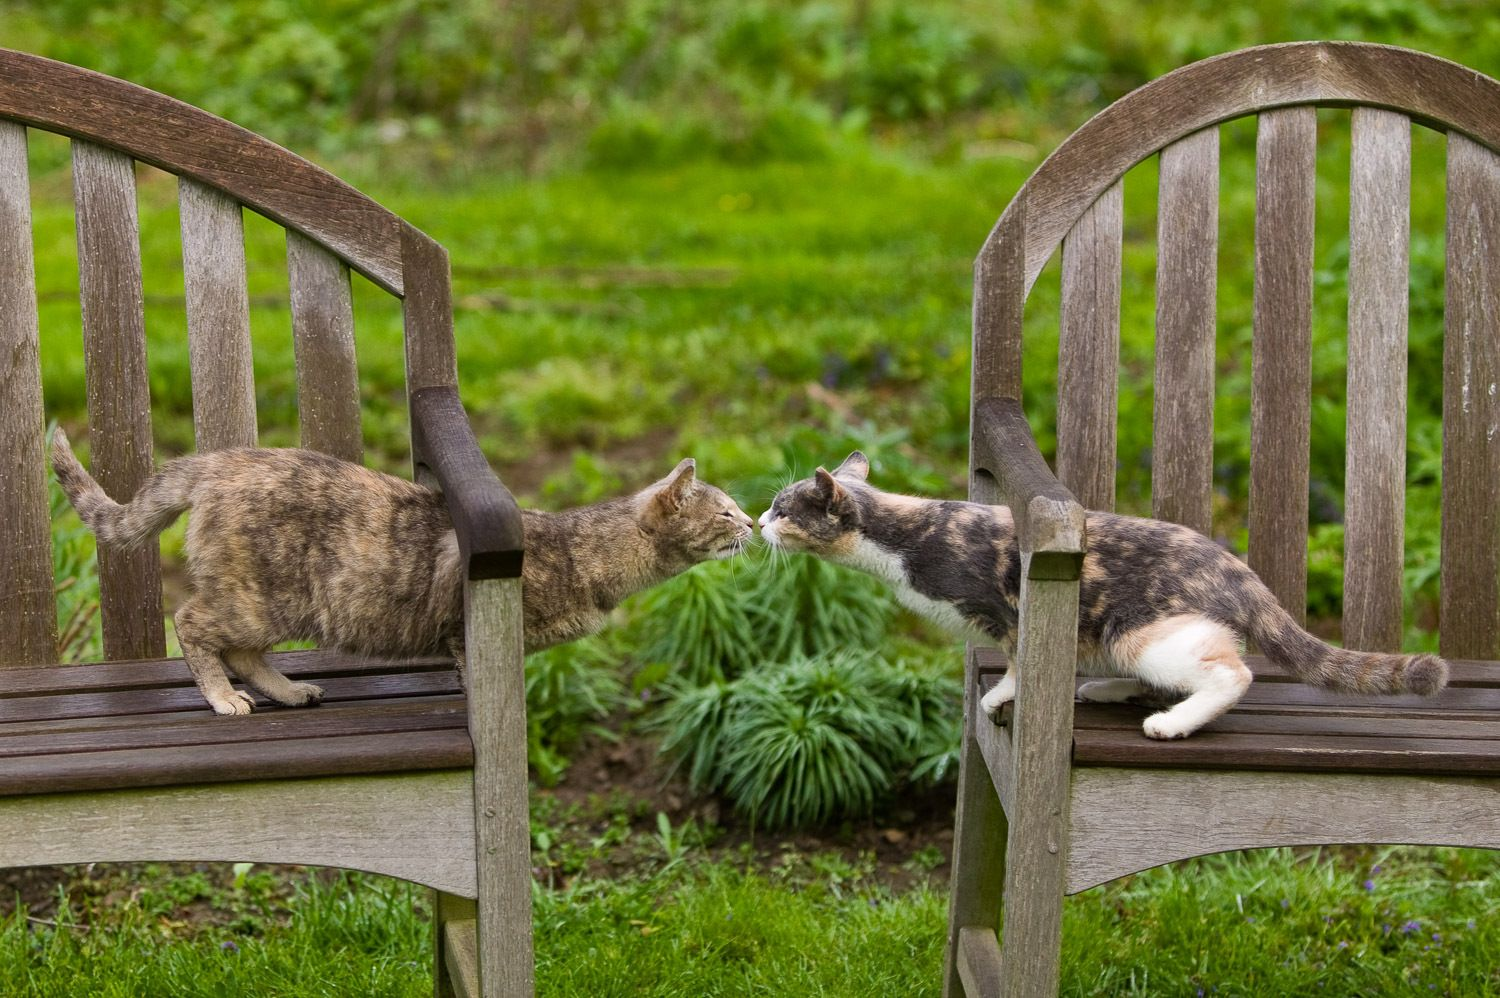 Kitties in the garden in Middletown, RI